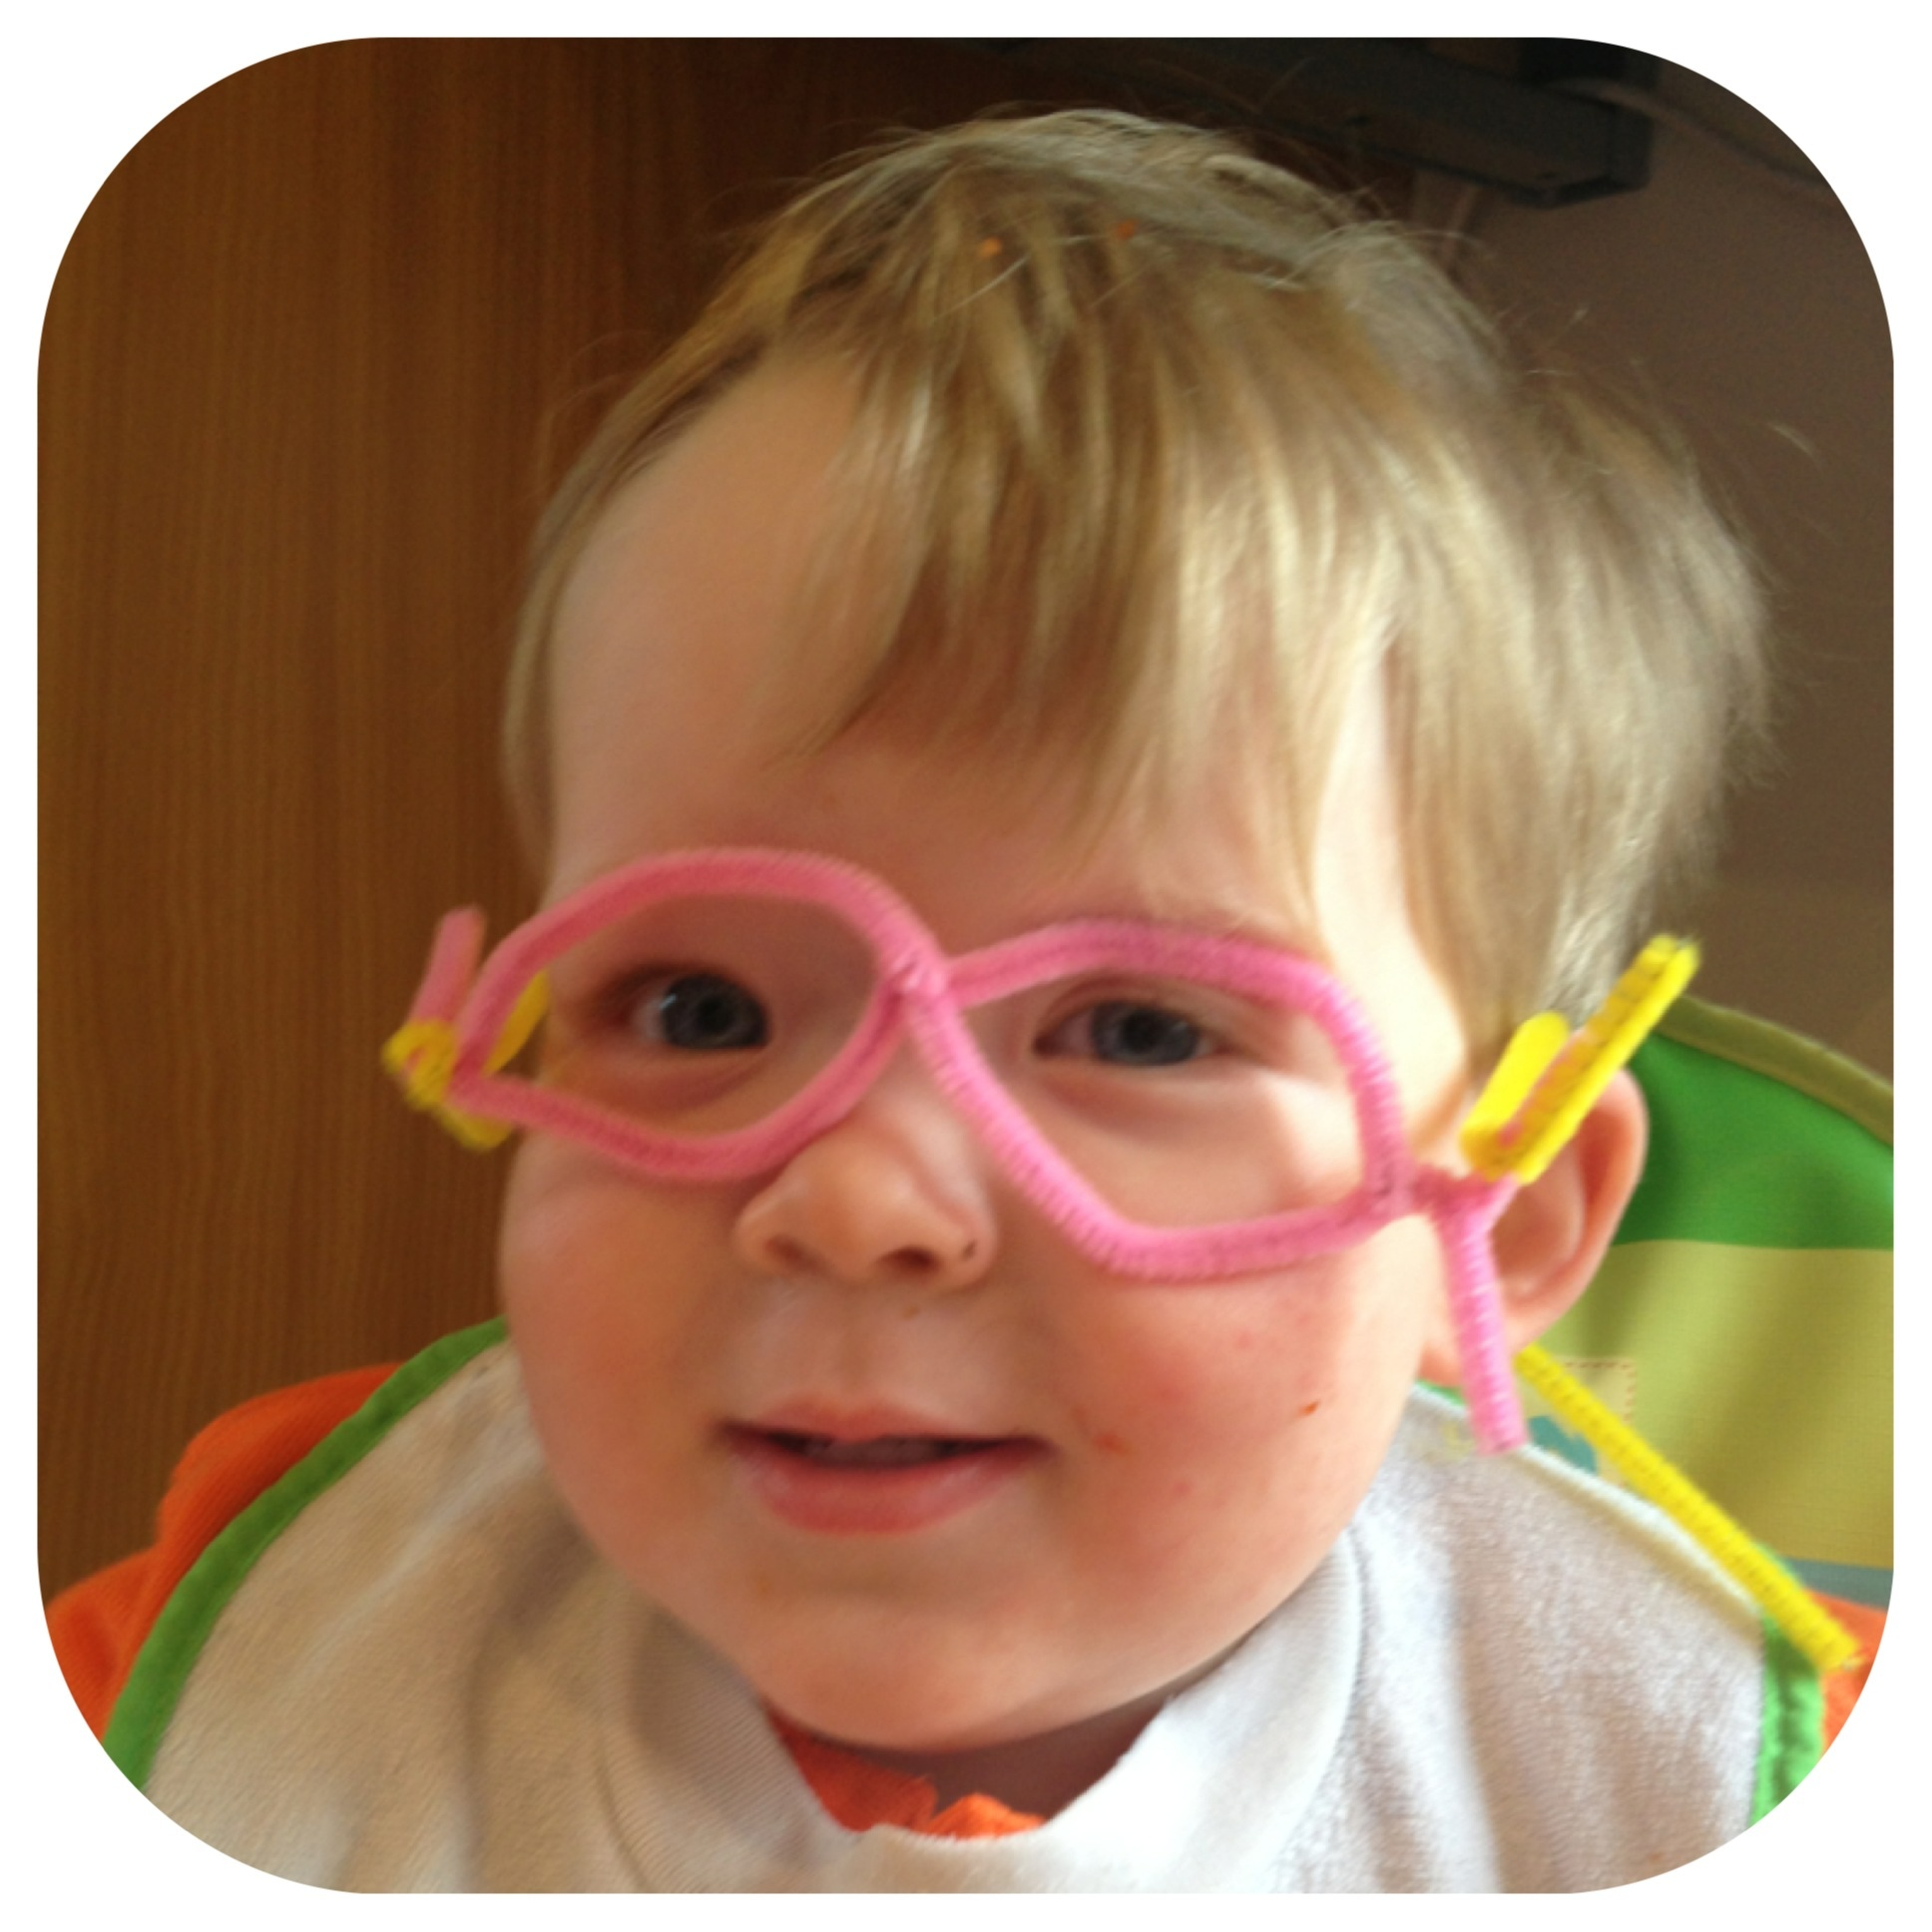 Oliver in pipe cleaner glasses